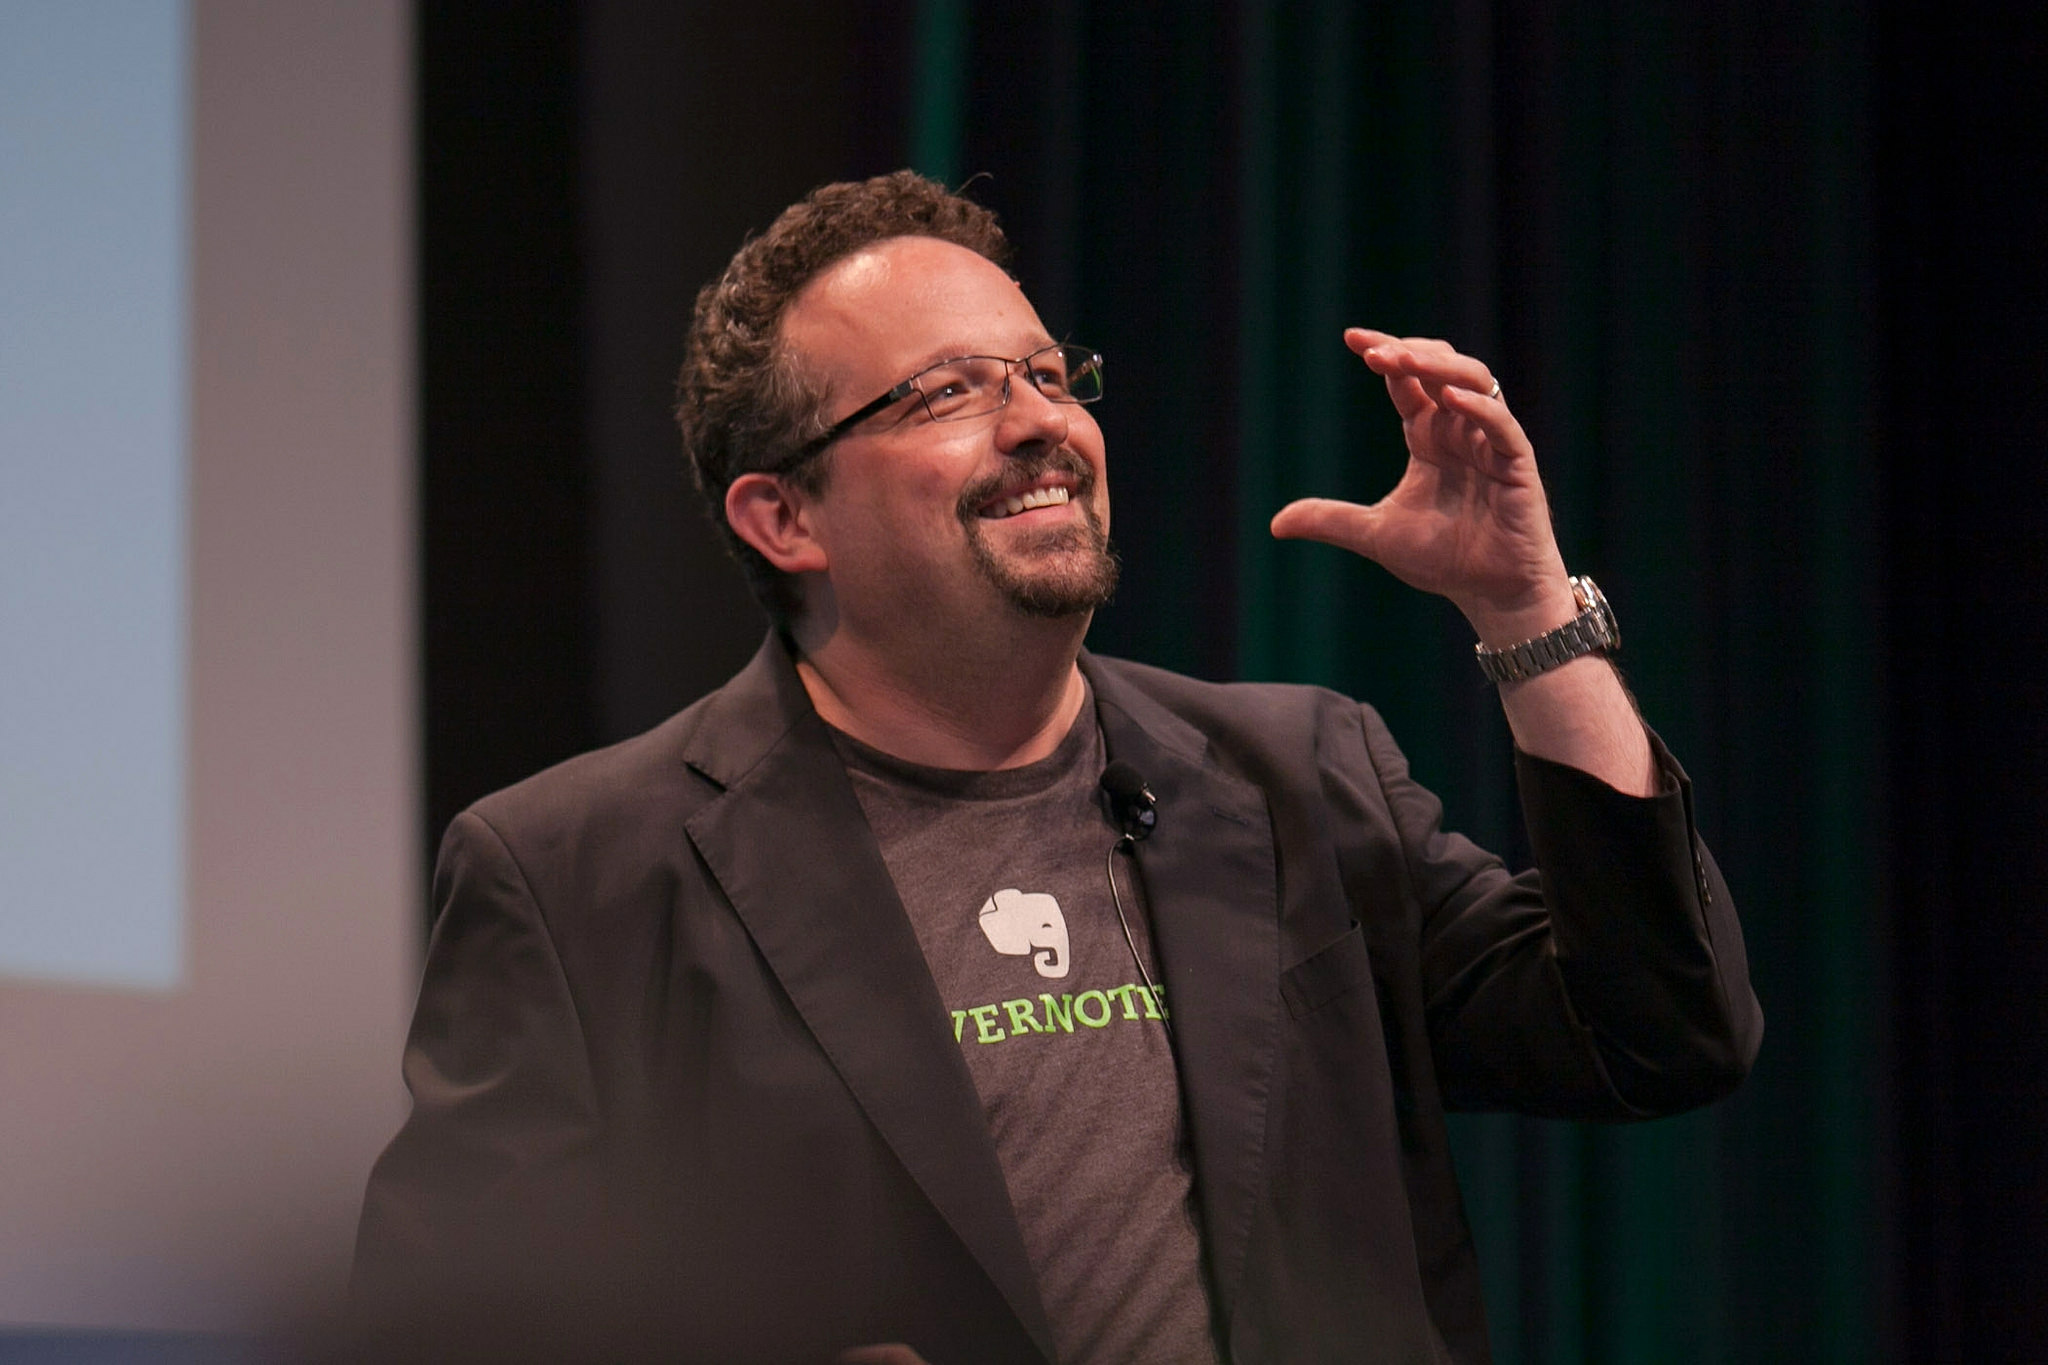 Evernote co-founder Phil Libin